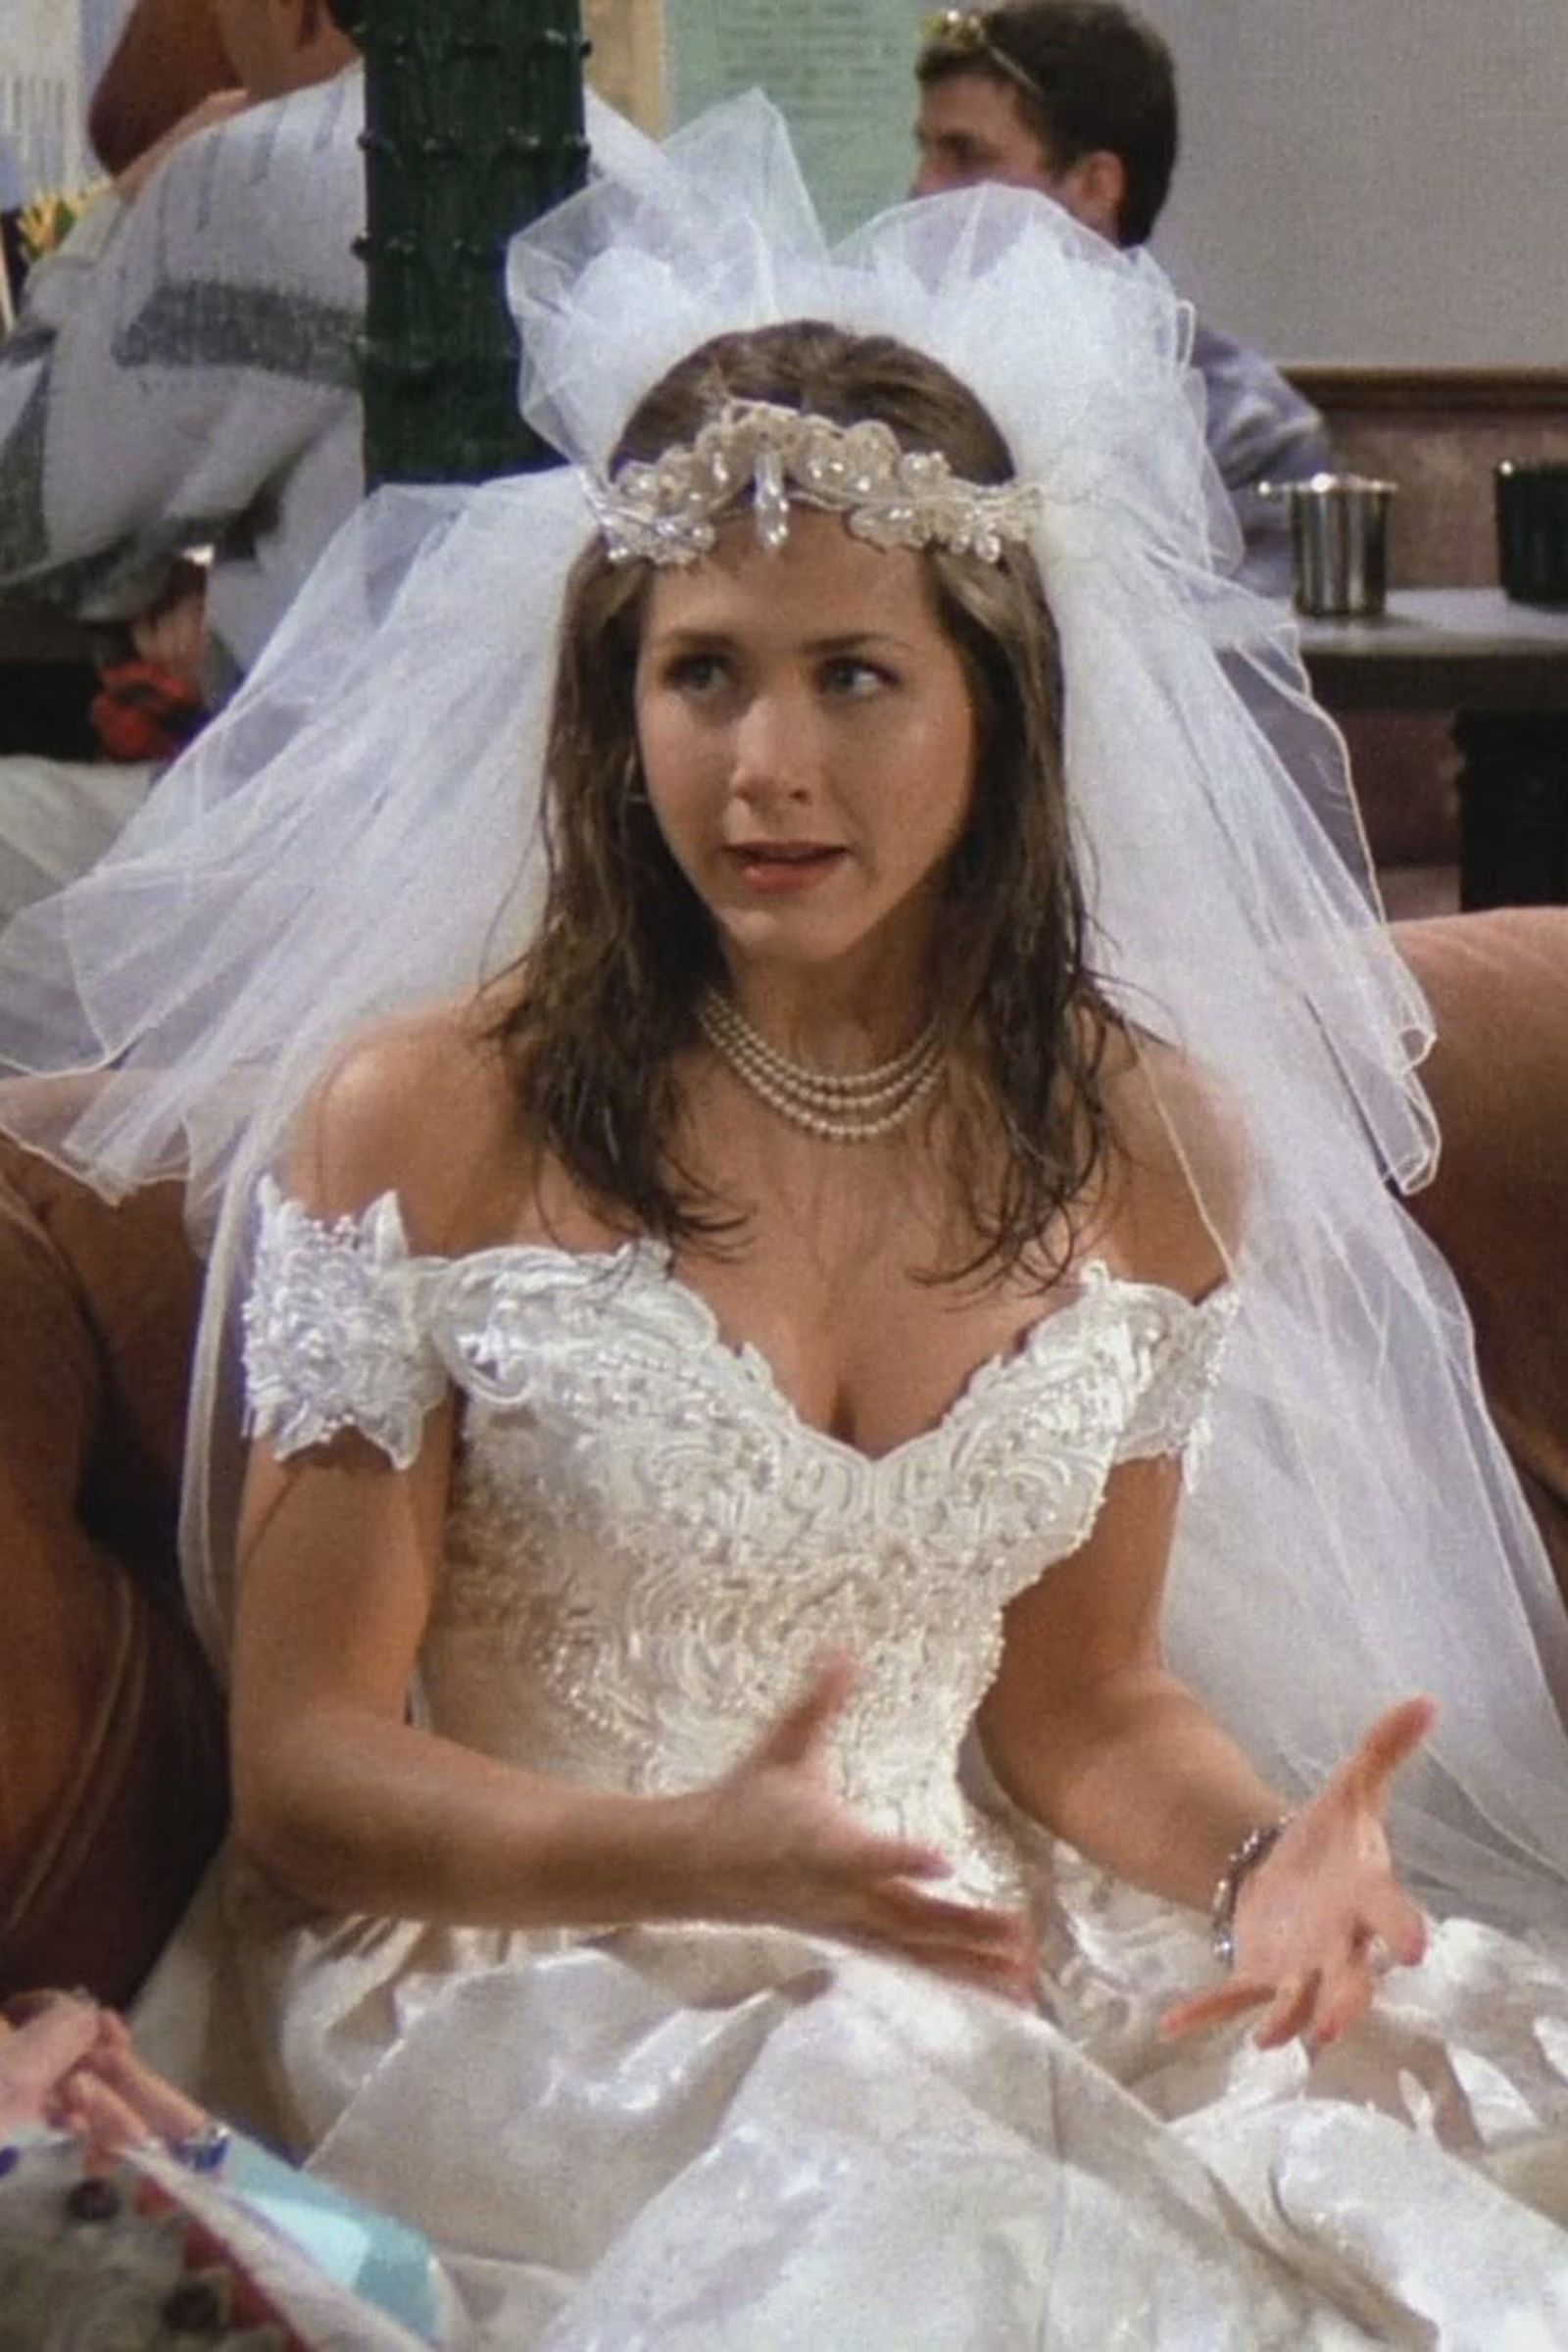 The Dreamiest Tv Wedding Dresses Of All Time Movie Wedding Dresses Famous Wedding Dresses Green Wedding Dresses [ 2400 x 1600 Pixel ]